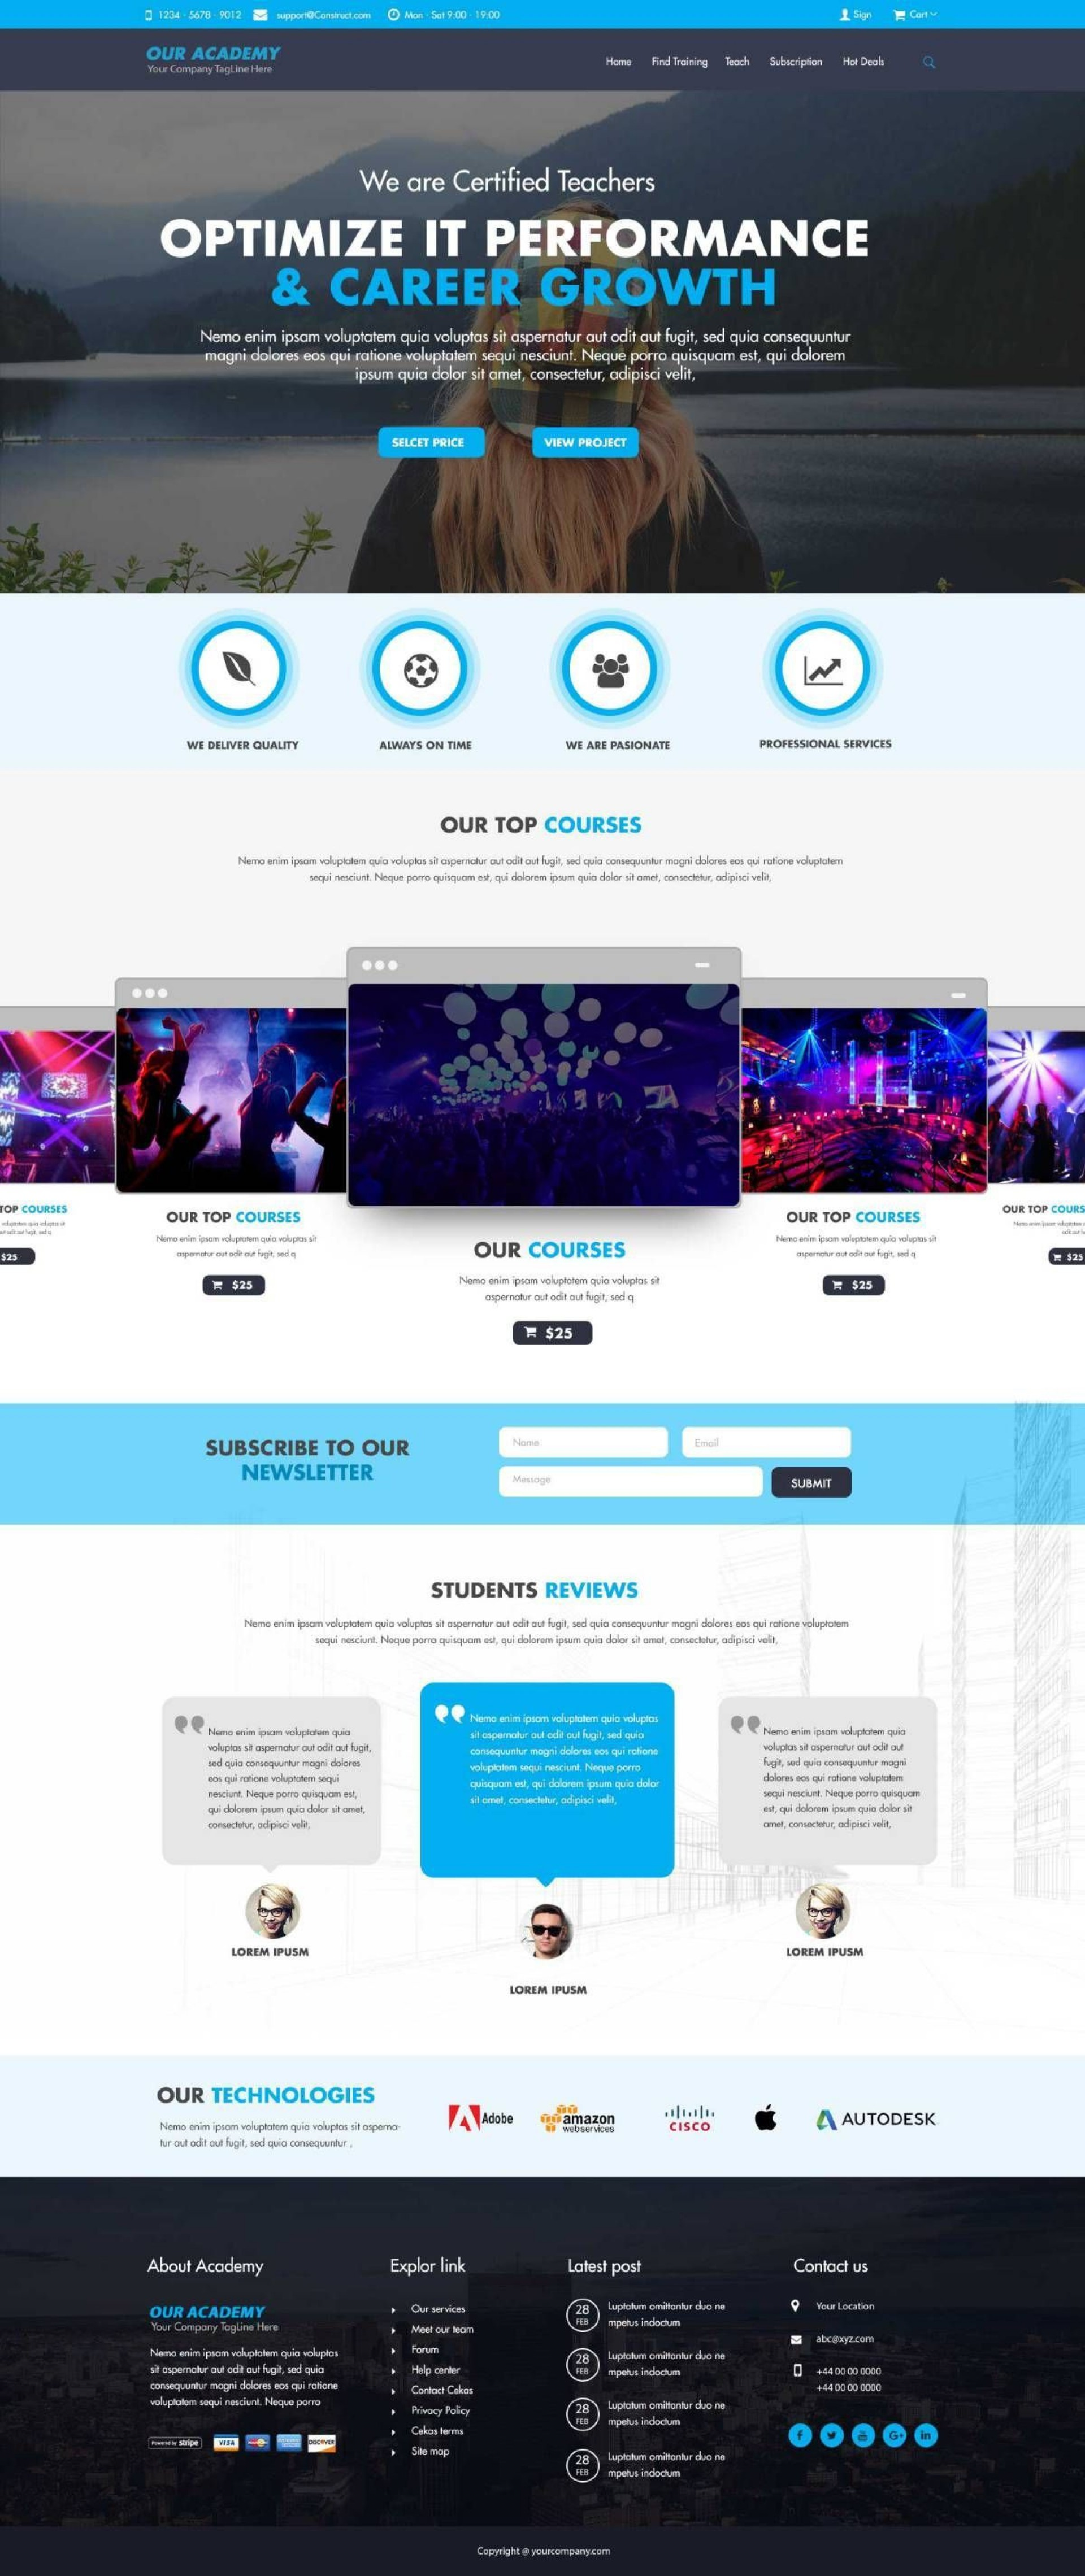 007 Unusual Website Template Html Free Download High Def  Indian School Software Company Spice1920